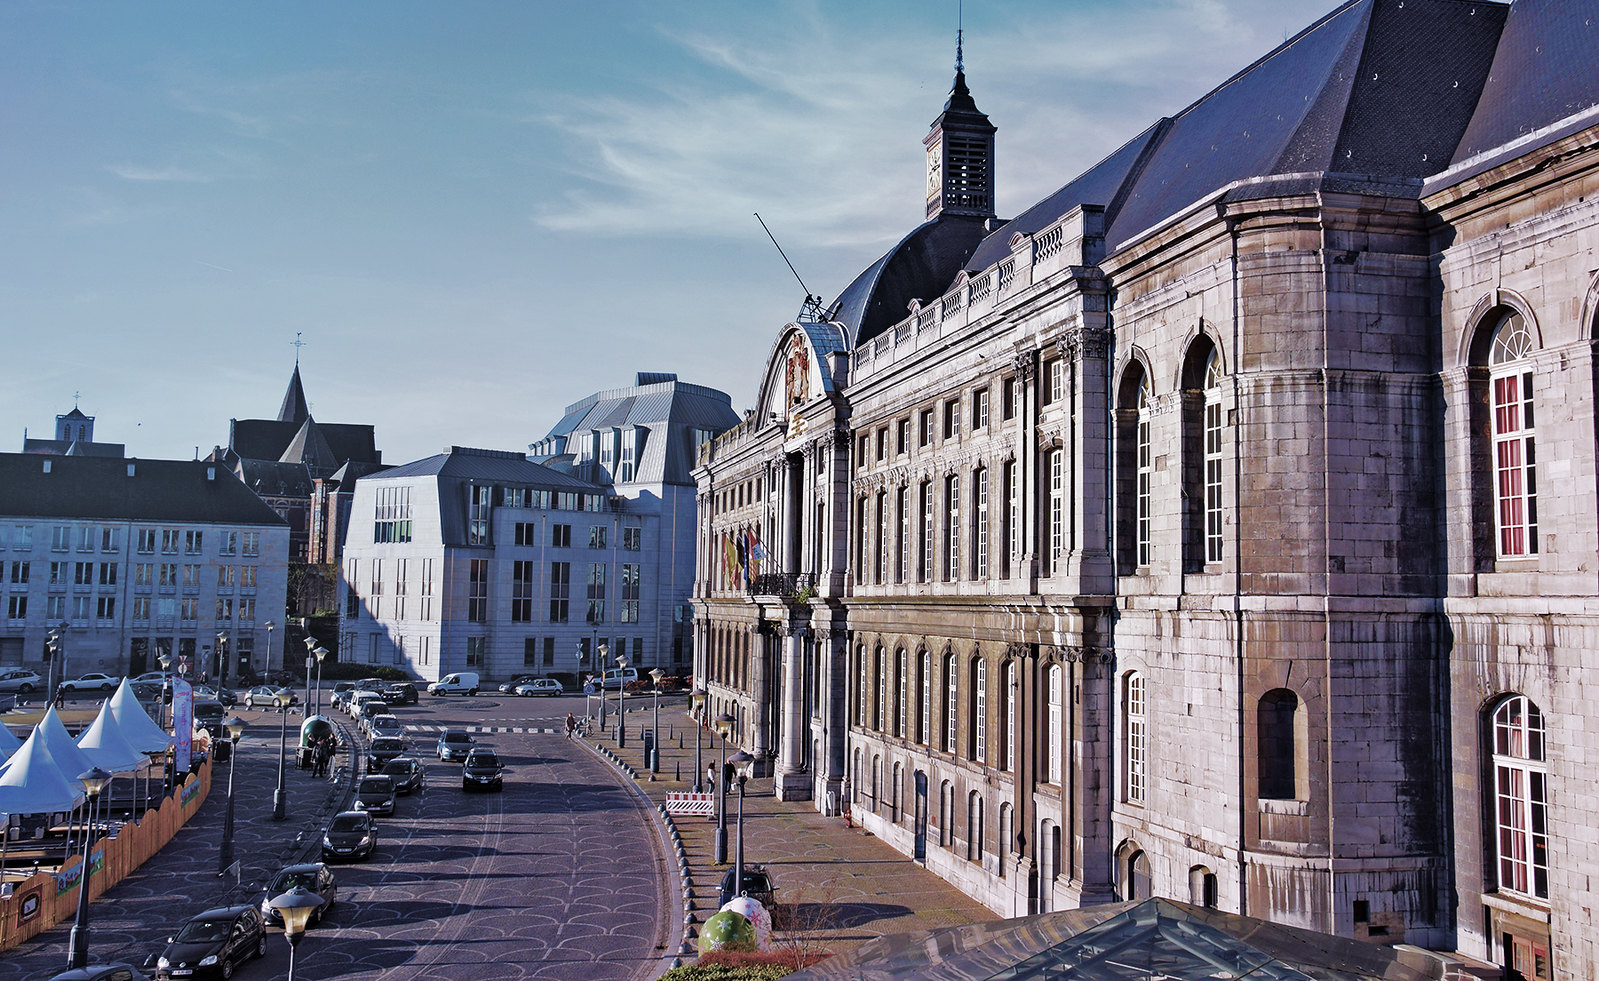 City of Liege